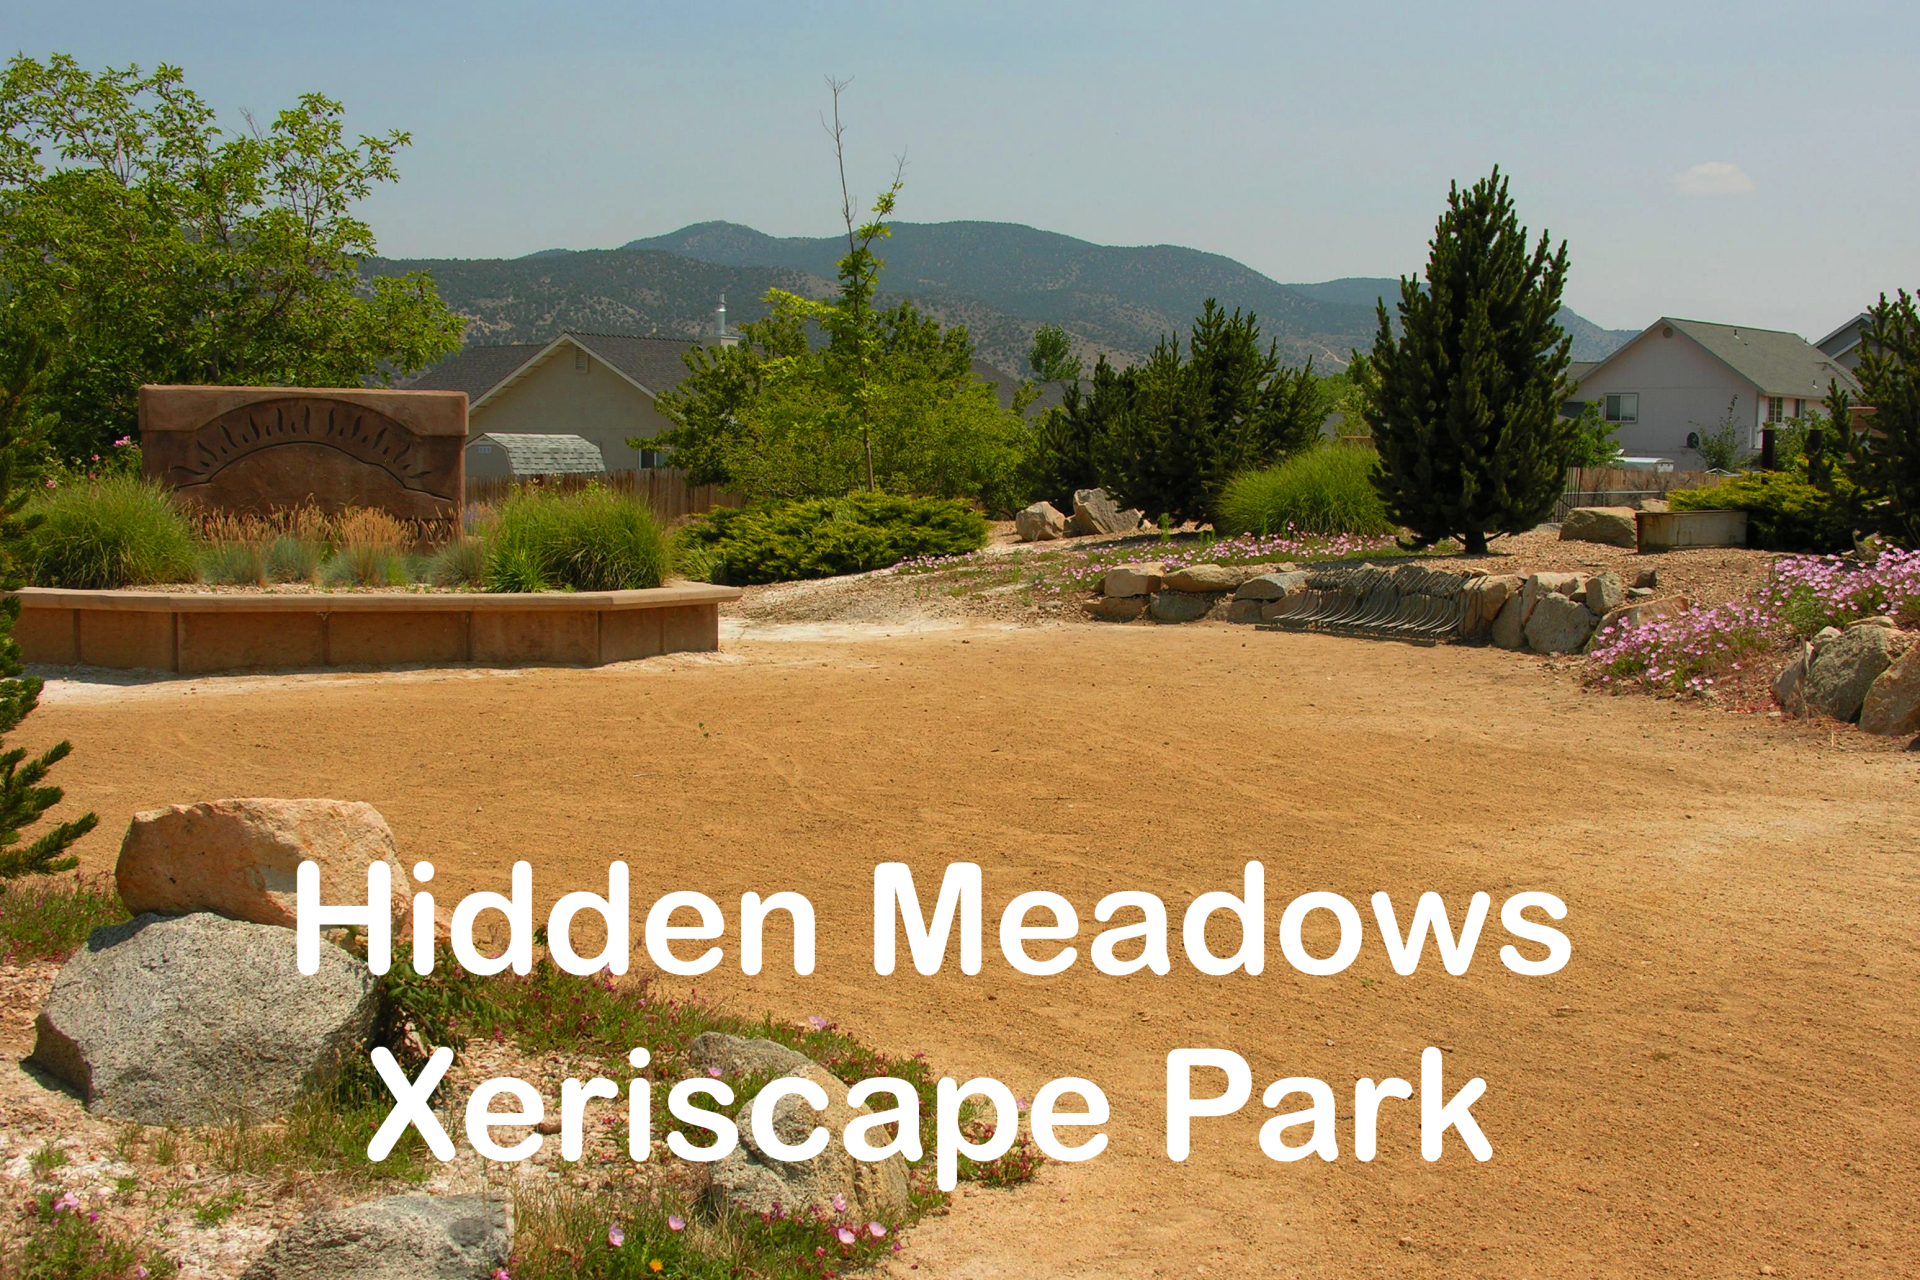 Hidden Meadows Xeriscape Park